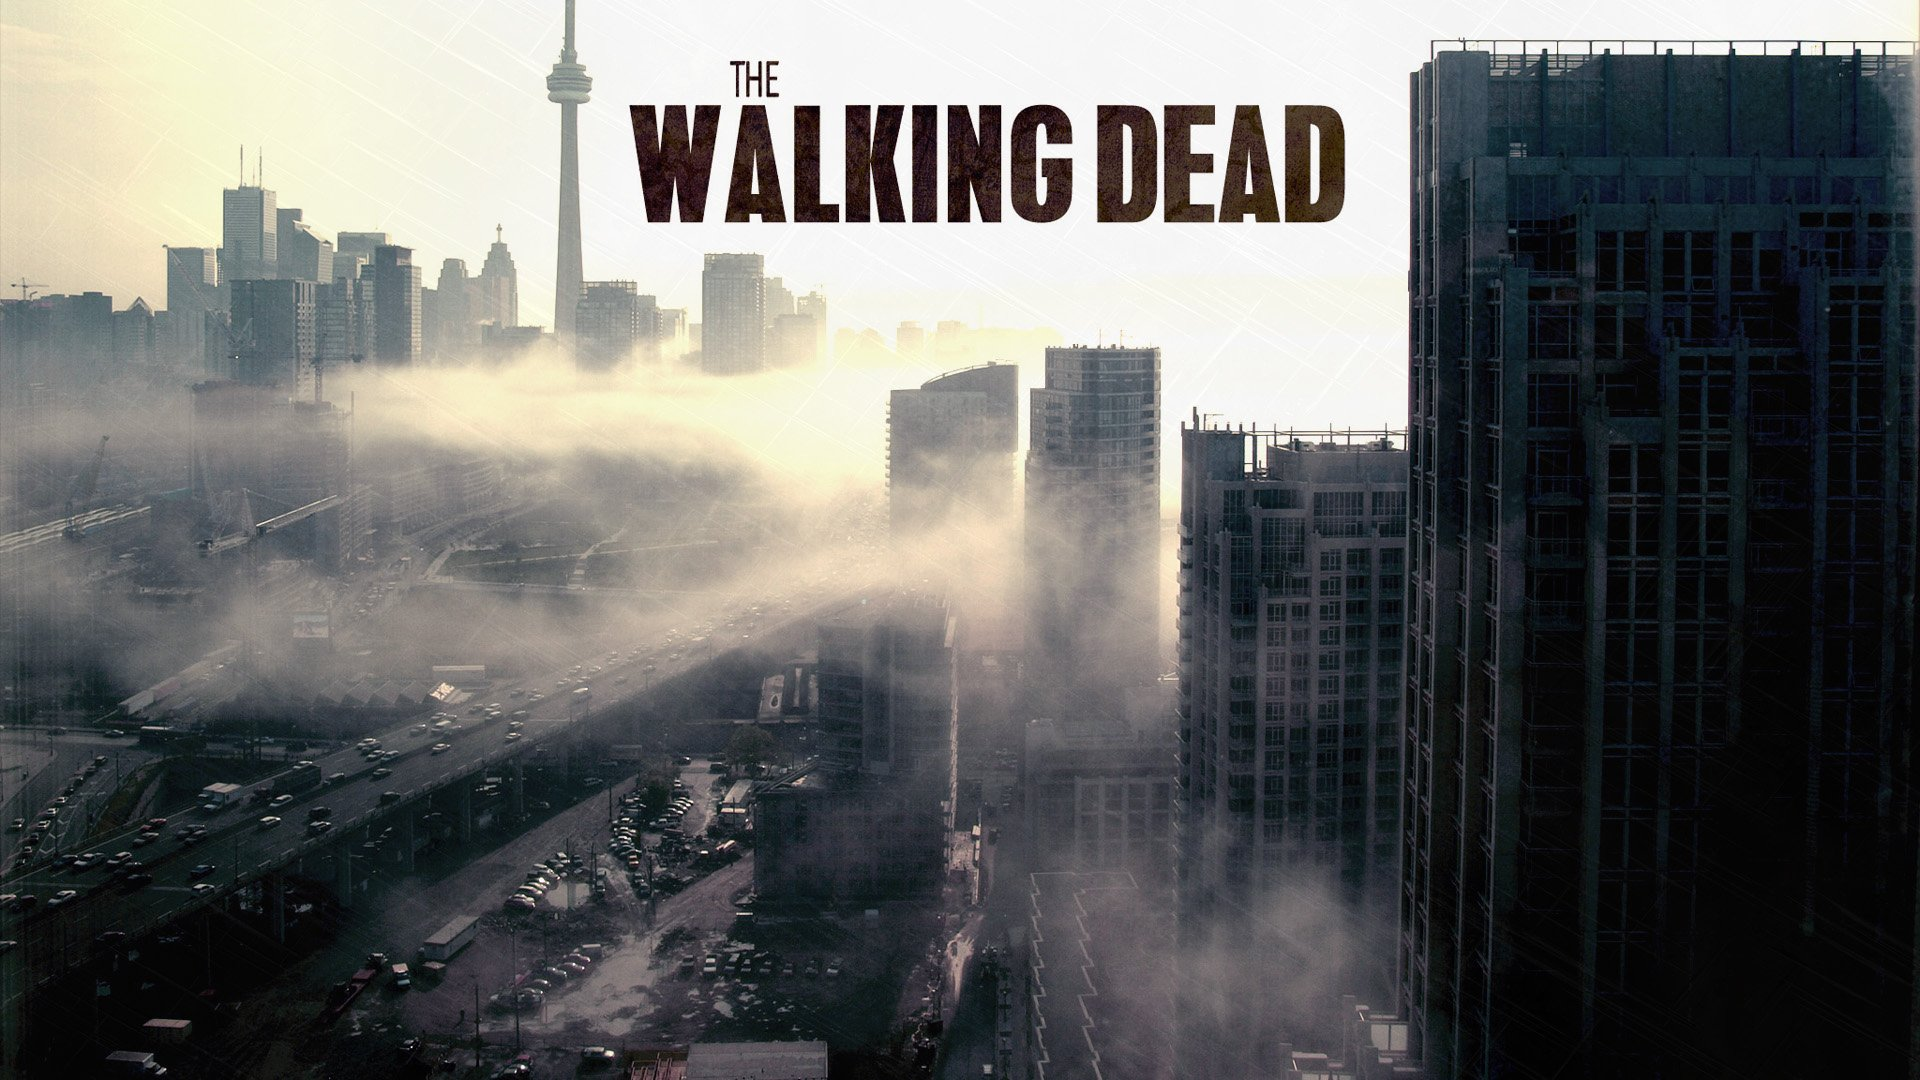 The Walking Dead Wallpaper